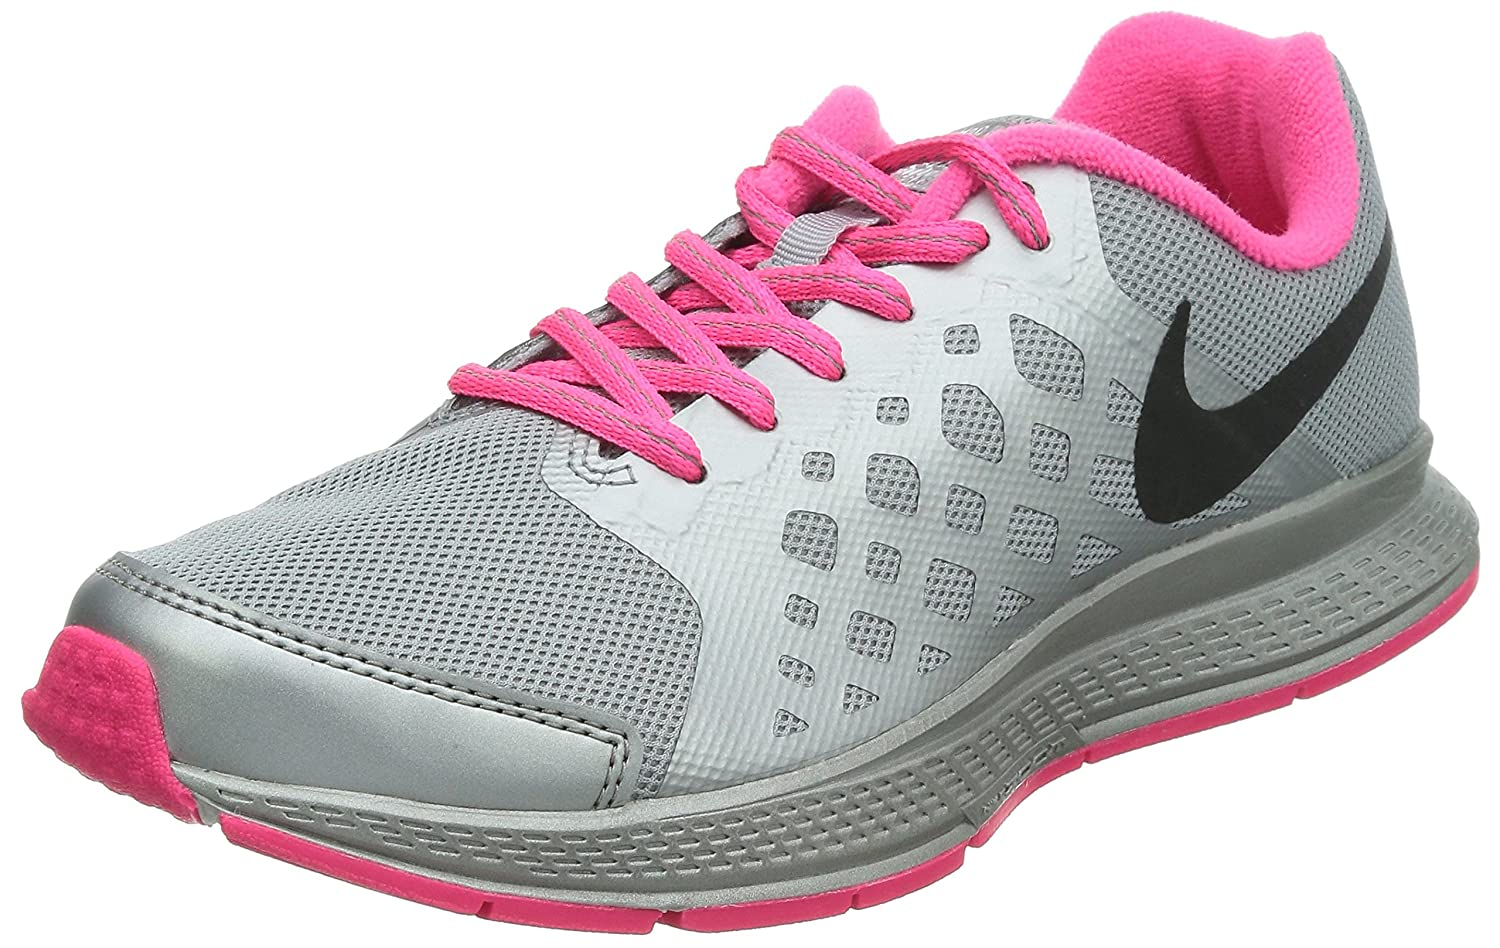 nike pegasus 31 women's running shoes